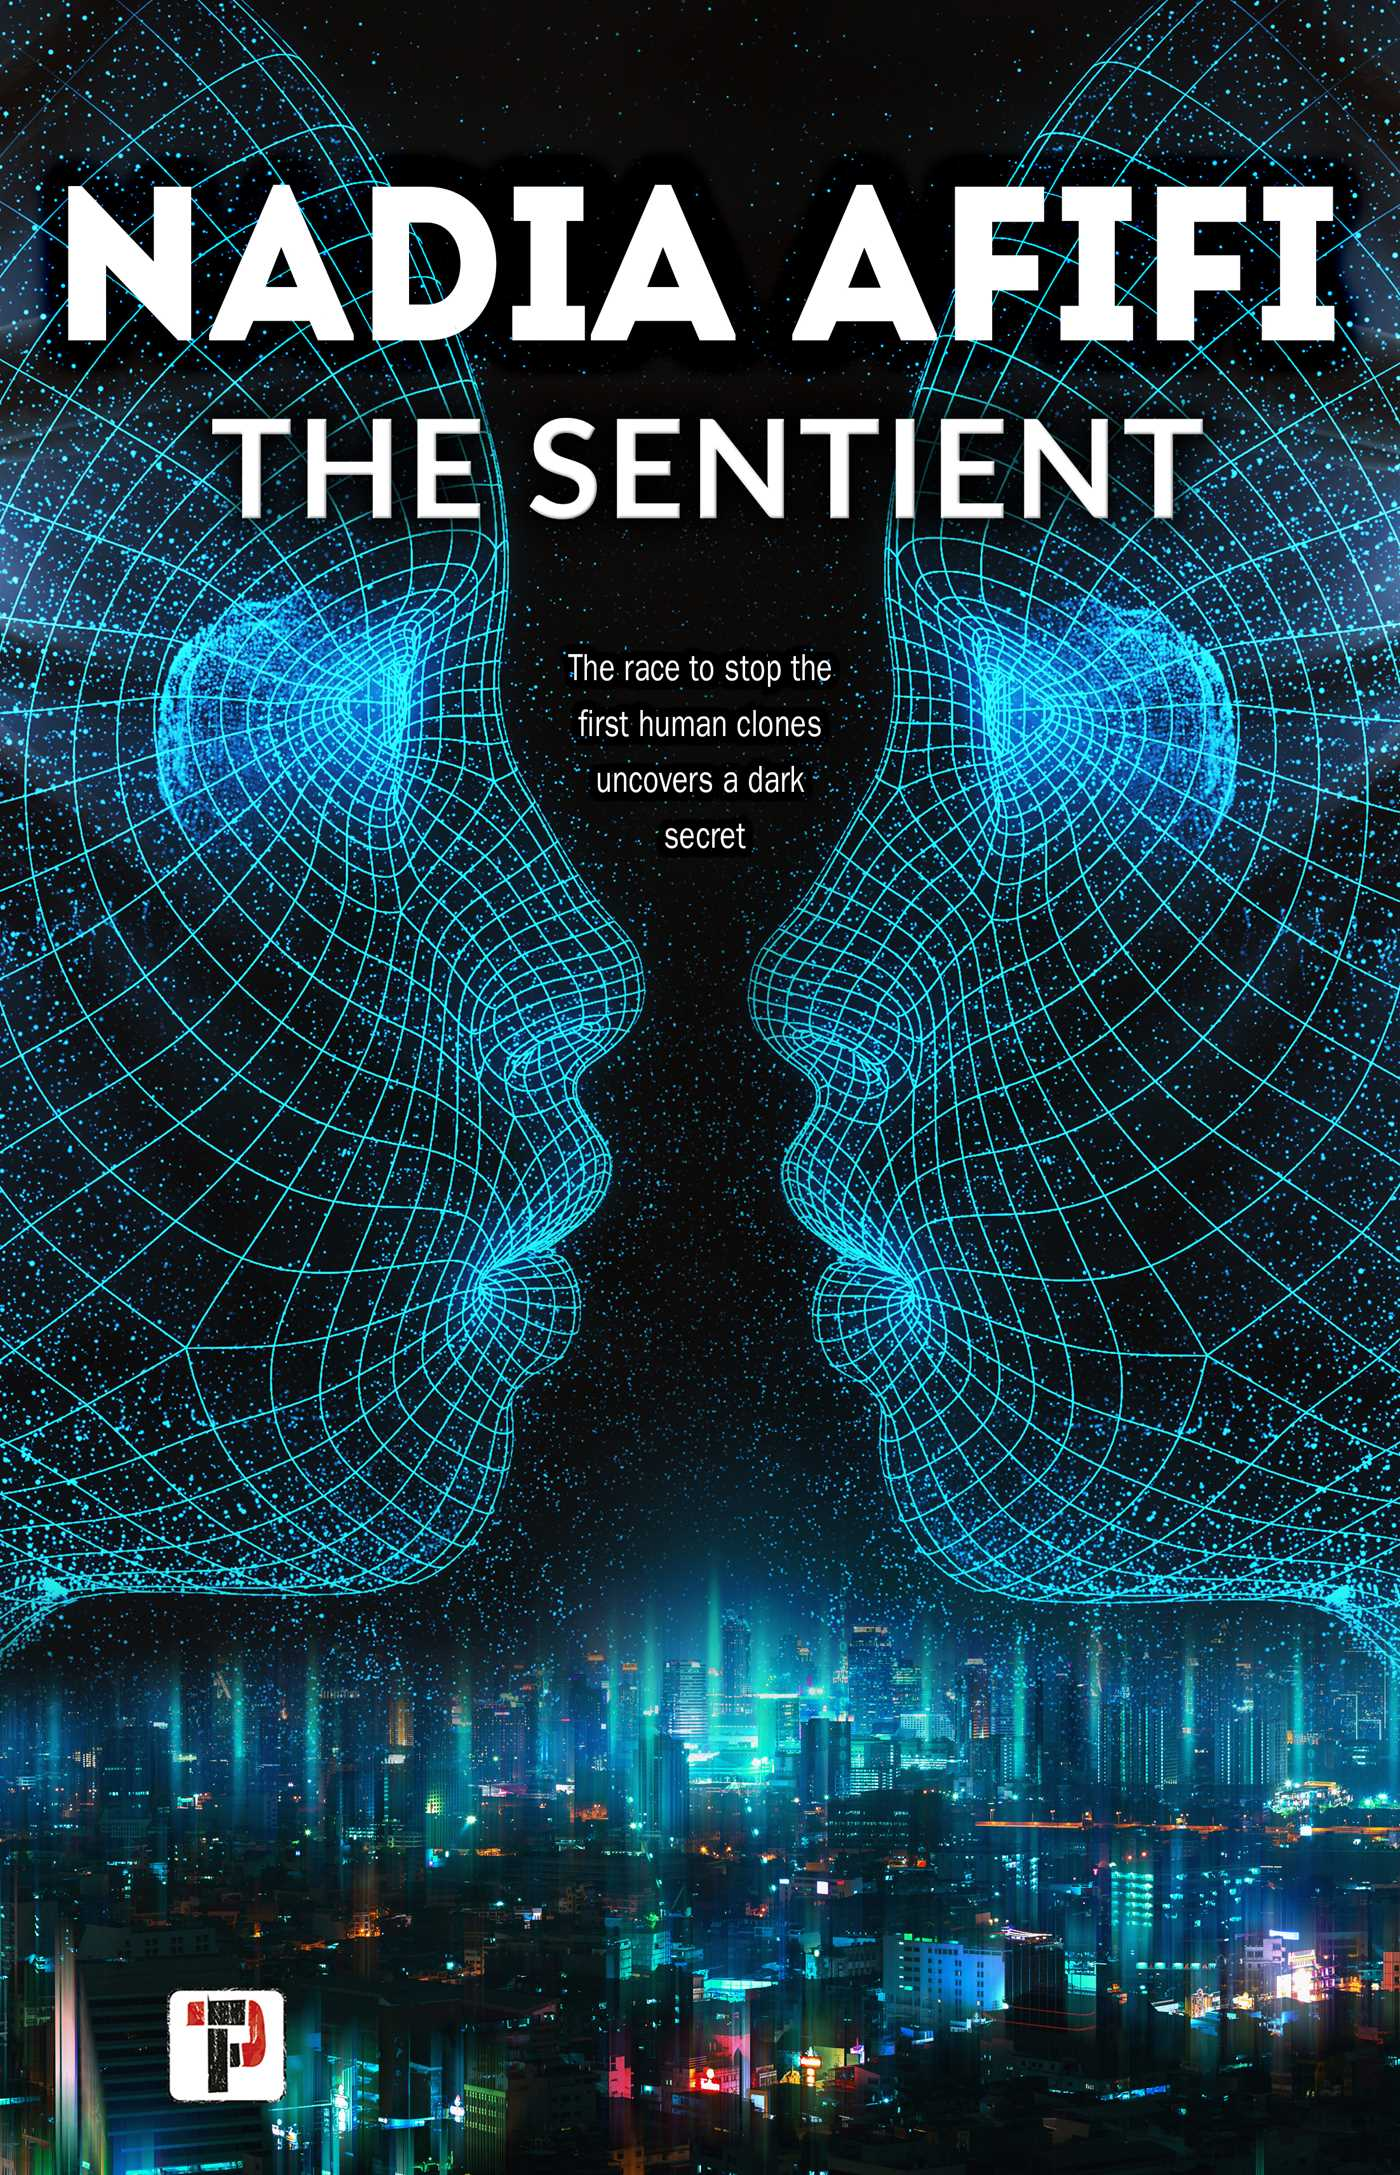 Cover for The Sentient by Nadia Afifi